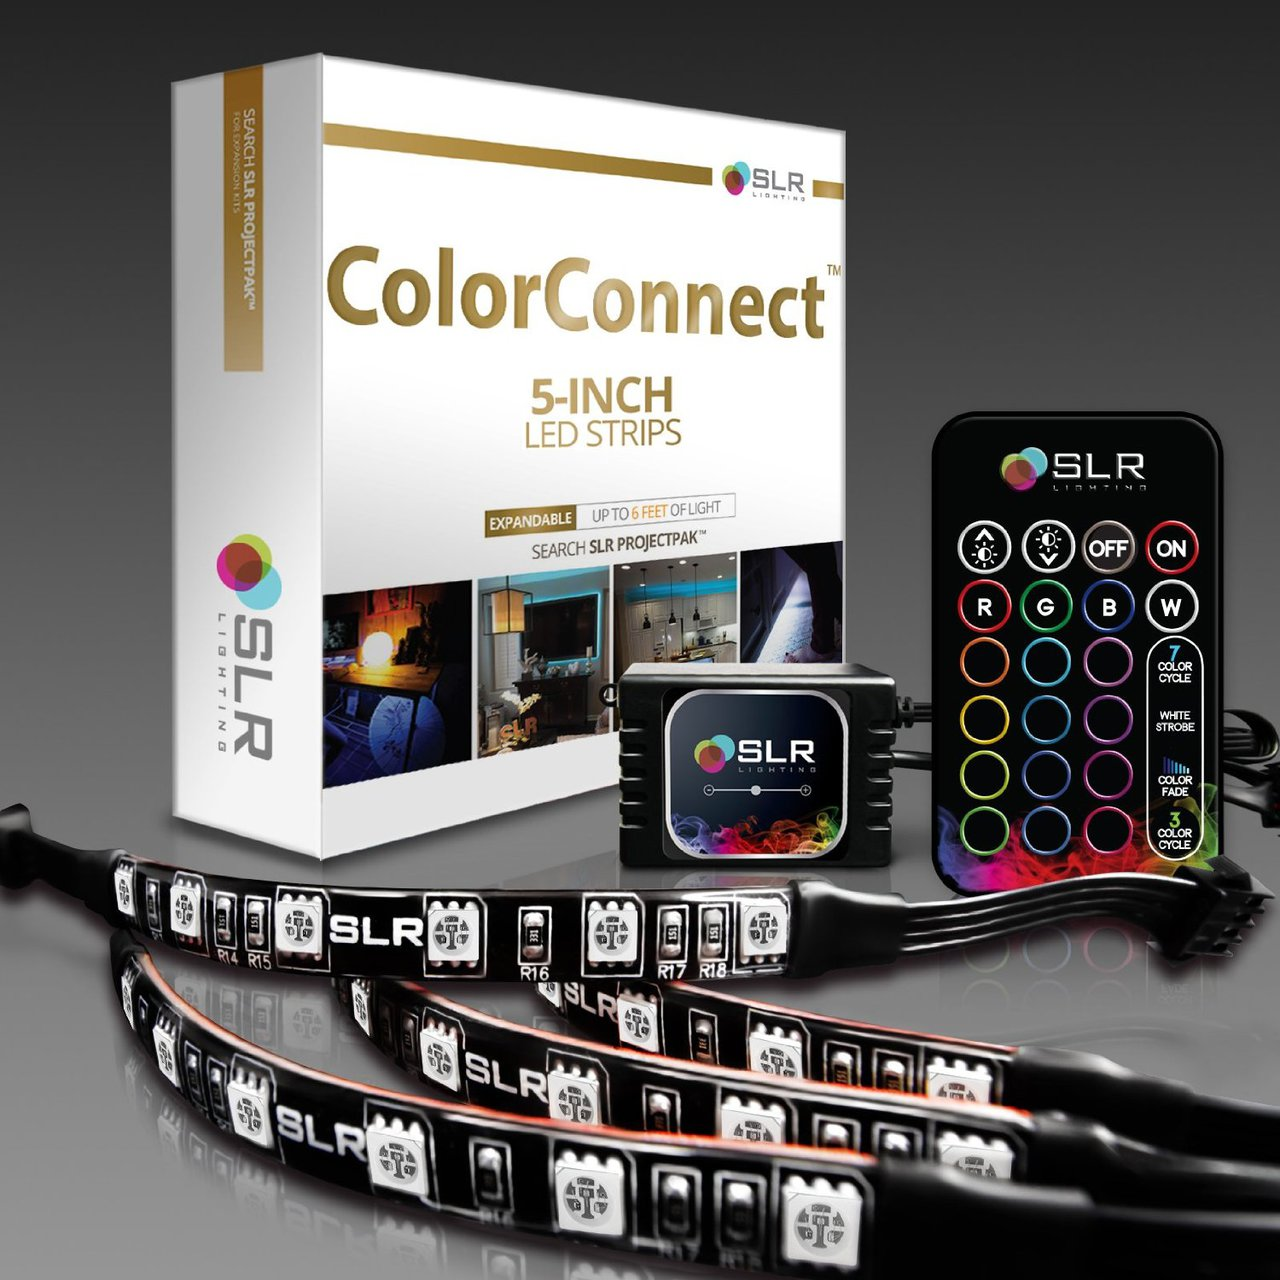 Colorconnect light kit with 5 inch led strips simple living redefined colorconnect light kit with 5 inch led strips aloadofball Choice Image